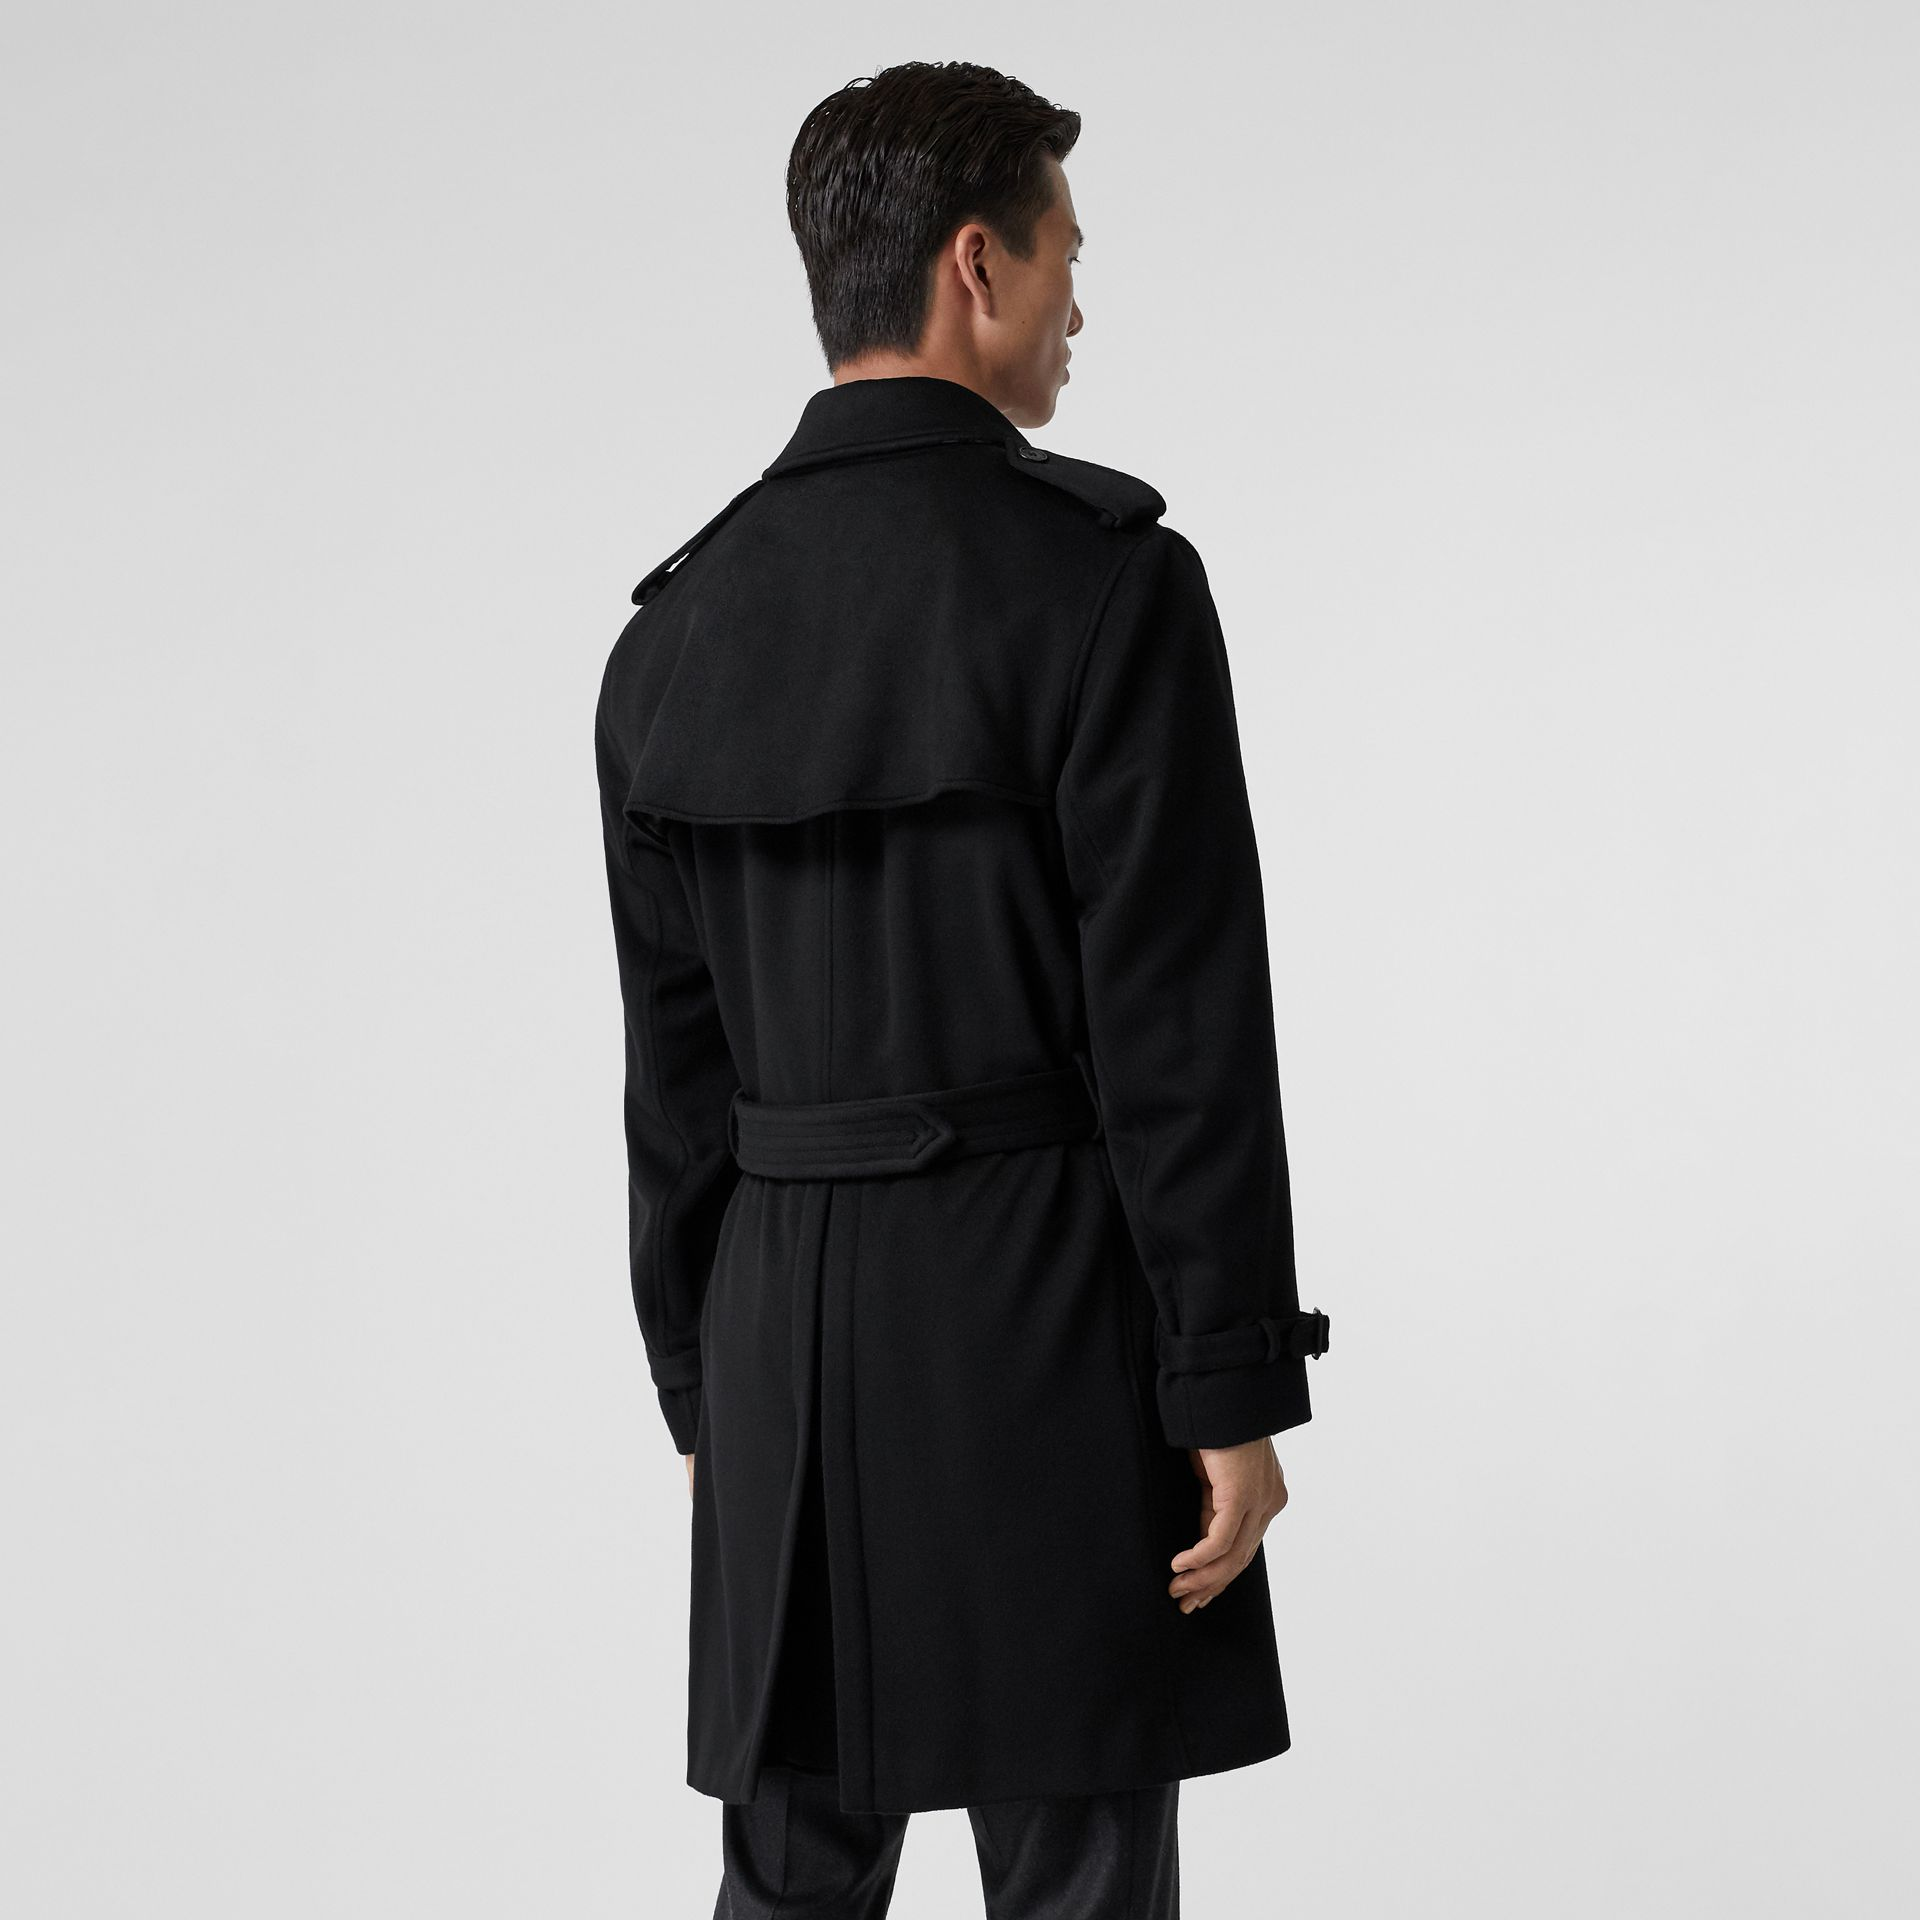 Cashmere Trench Coat in Black - Men | Burberry United States - gallery image 2